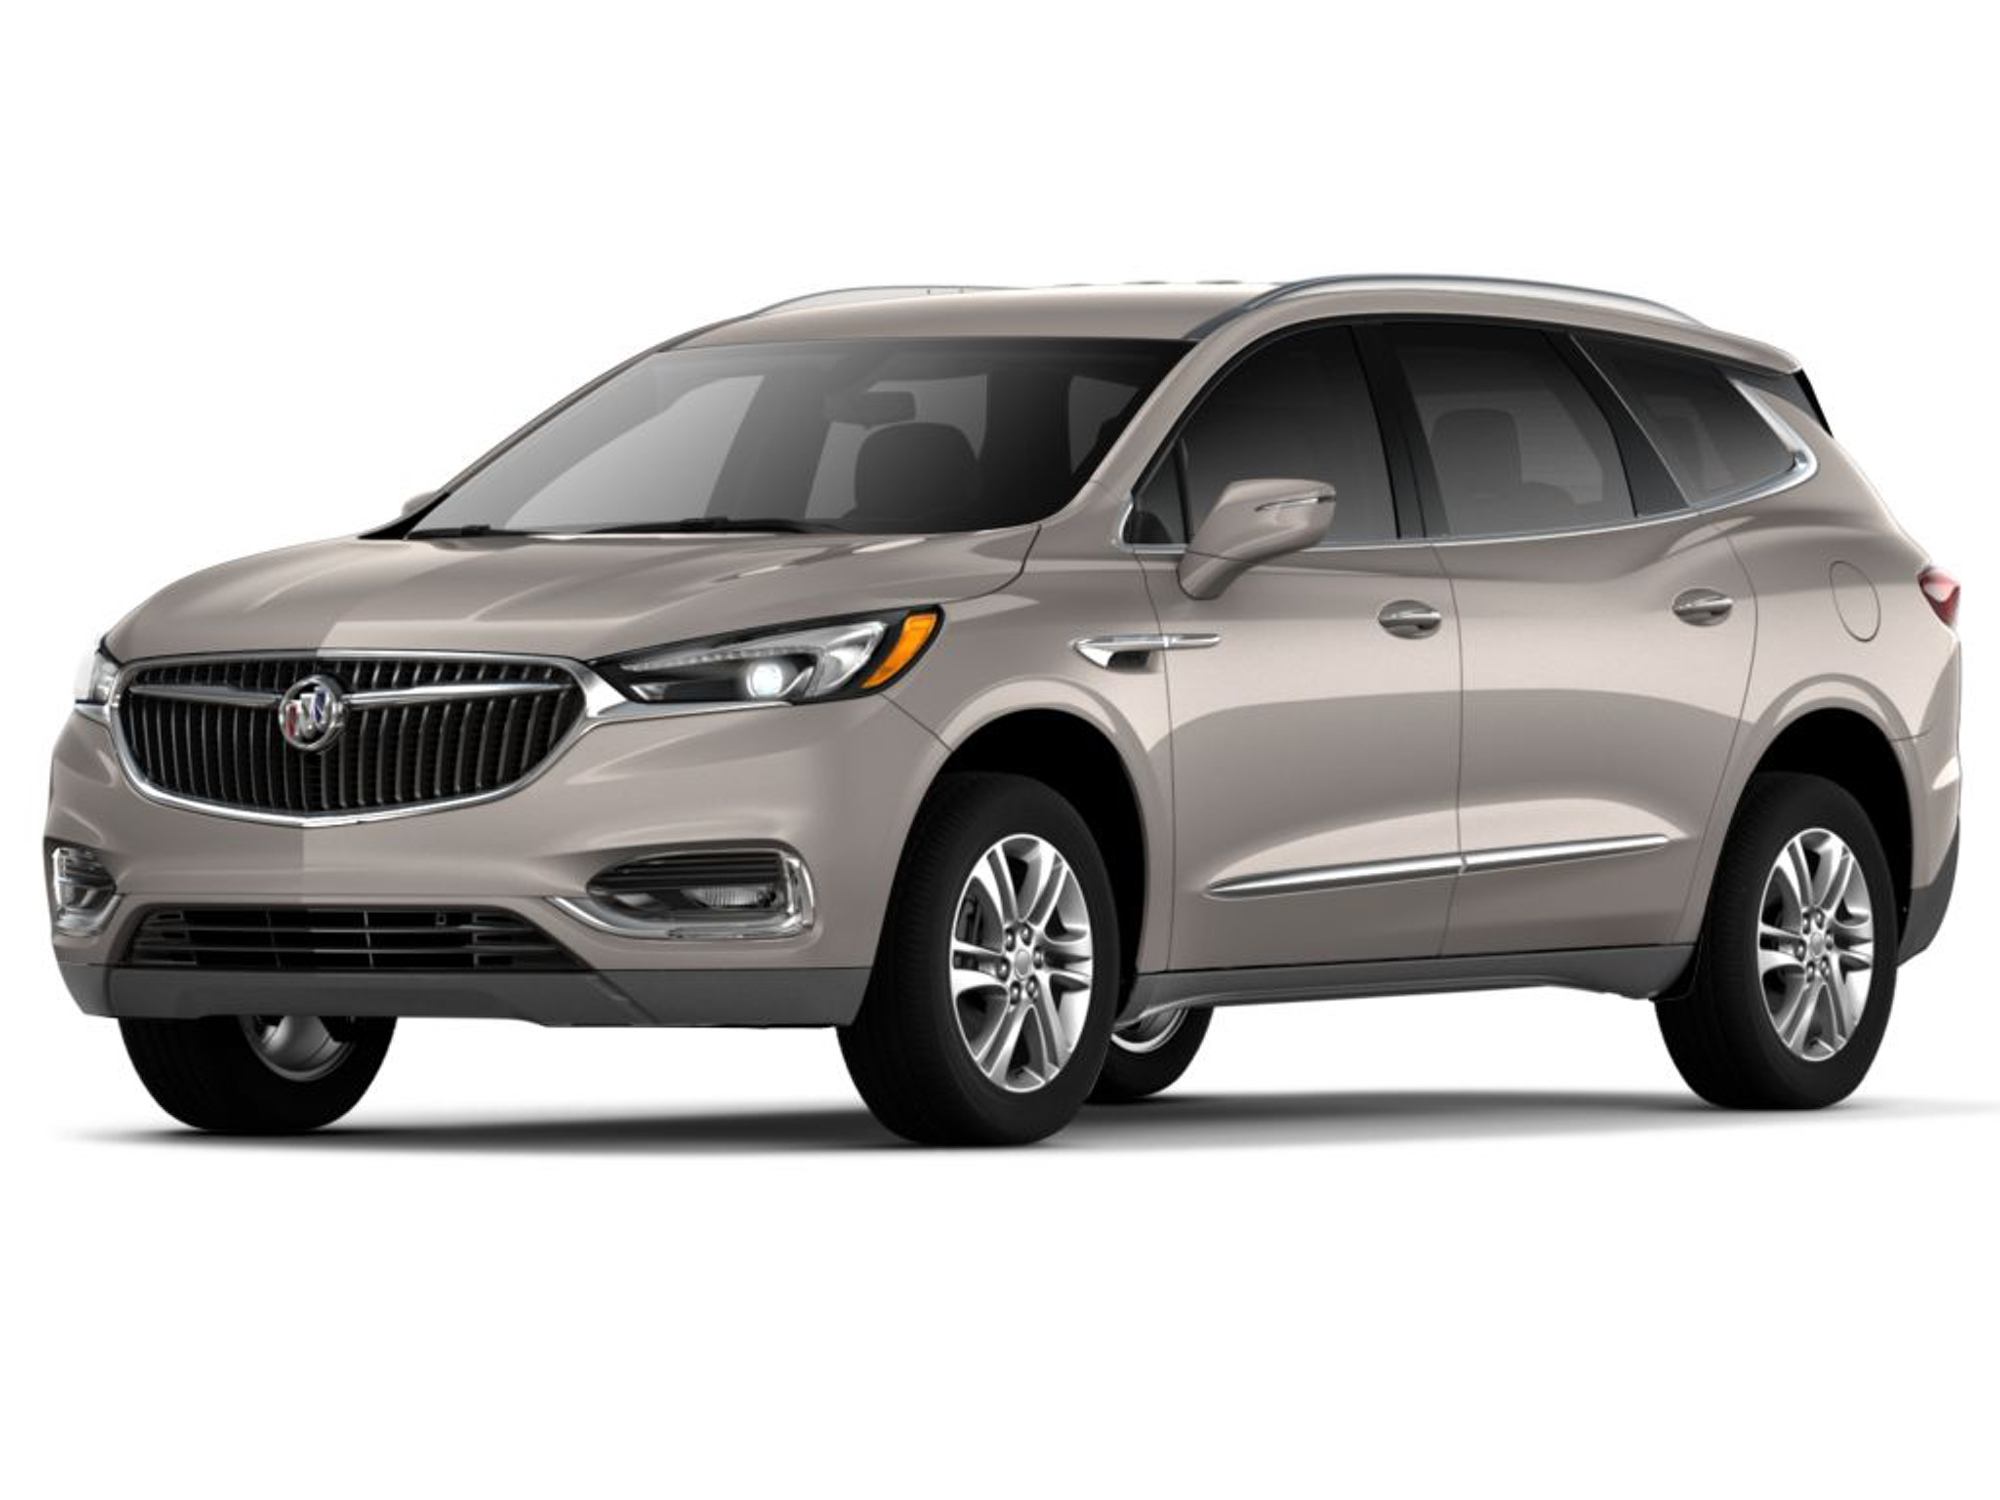 2019 Buick Enclave Exterior Colors | Gm Authority New 2022 Buick Enclave Discounts, Discontinued, Exterior Colors